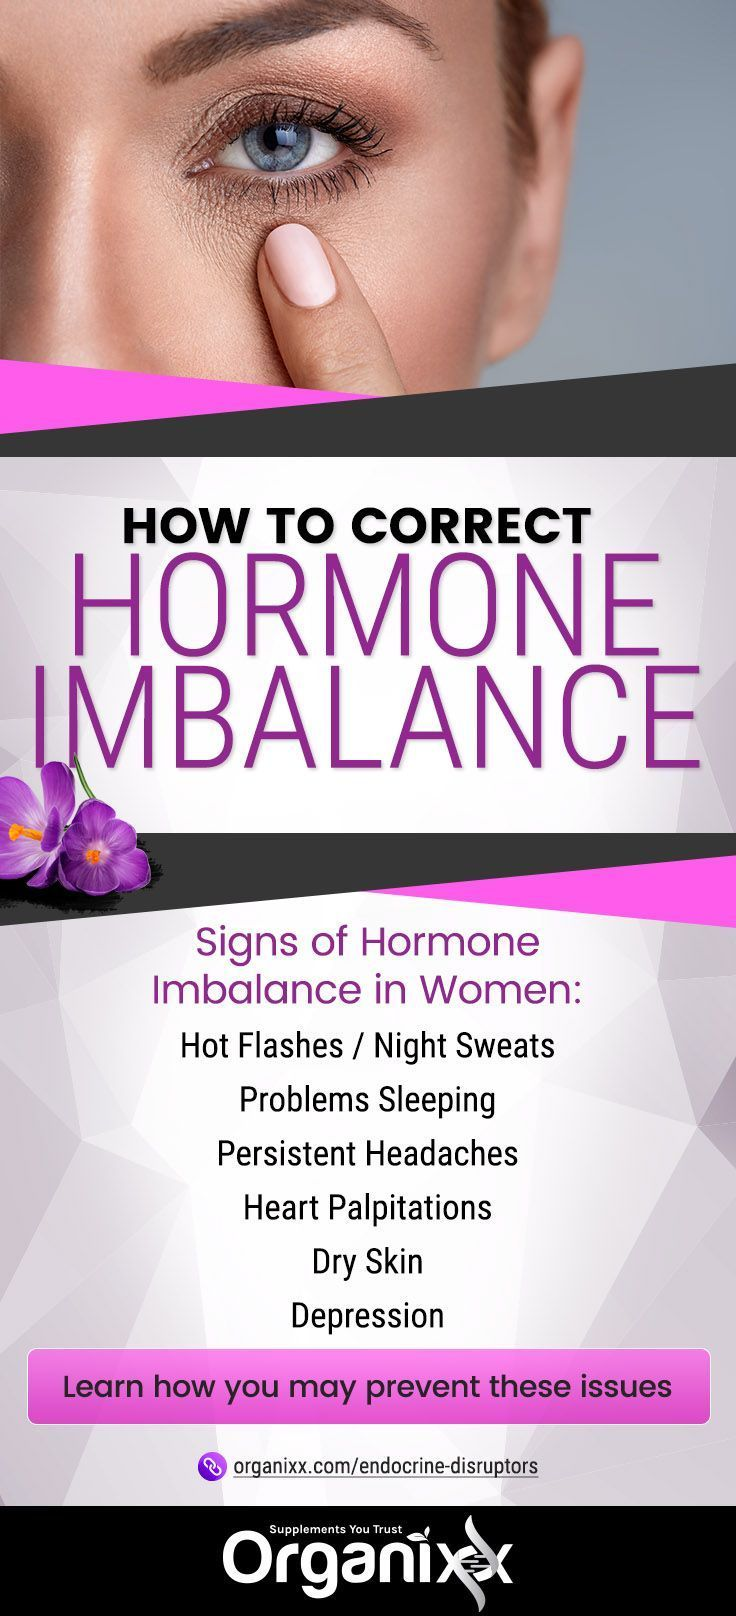 6c76ce5e927 Discover how you may prevent hormone issues and how to correct hormone  imbalance! #hormones #hormonehealth #hormoneimbalance #hormonebalance